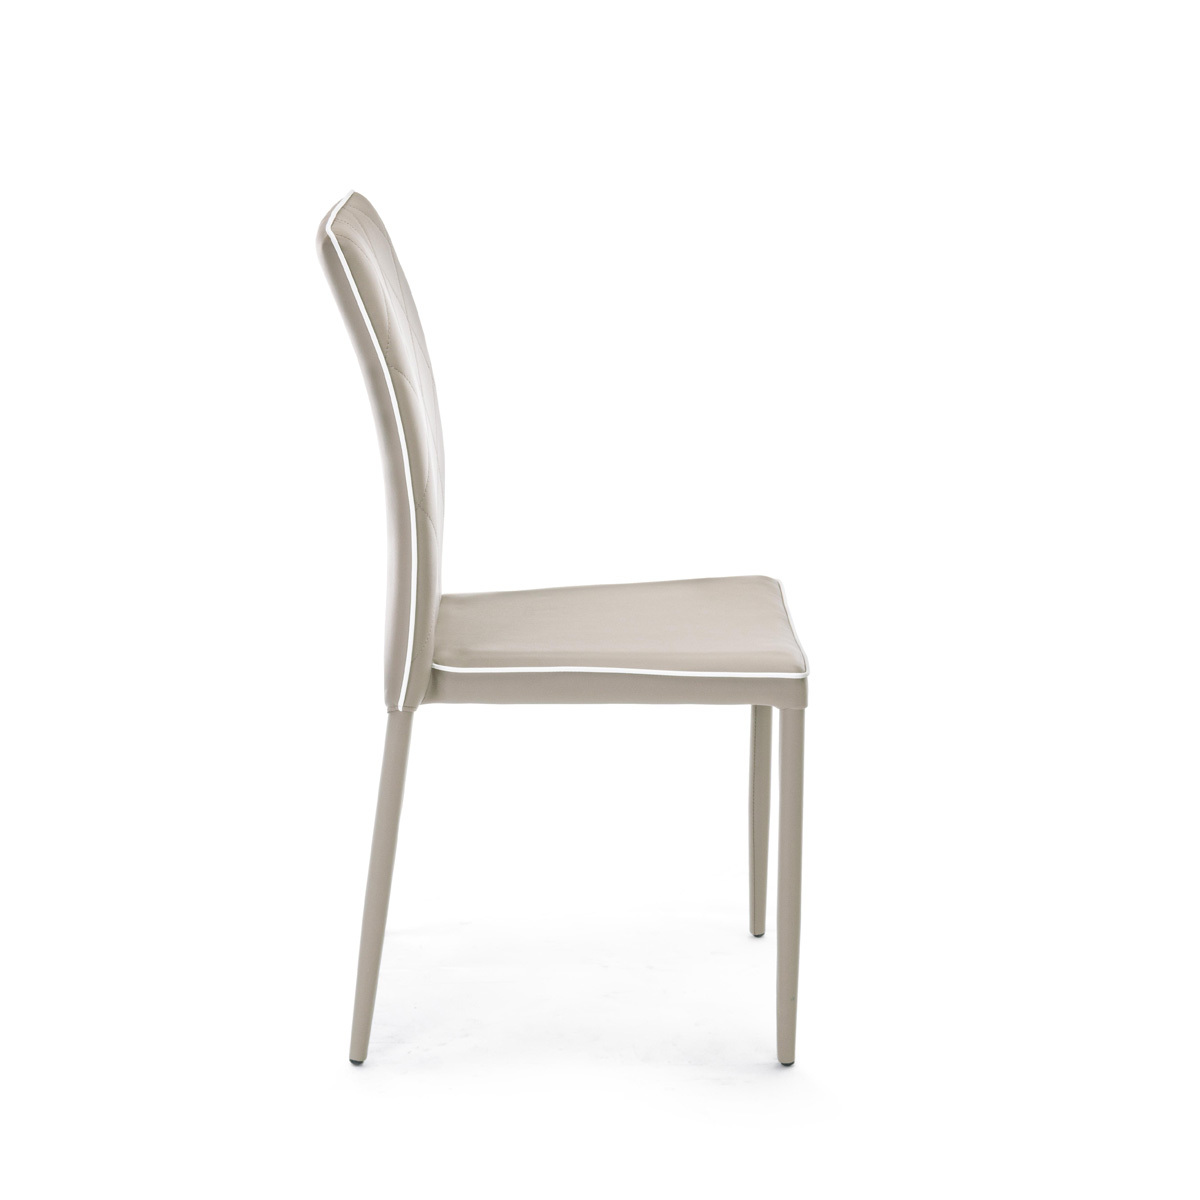 Photos 3: Bizzotto Chair covered in faux leather - tortora 0730786